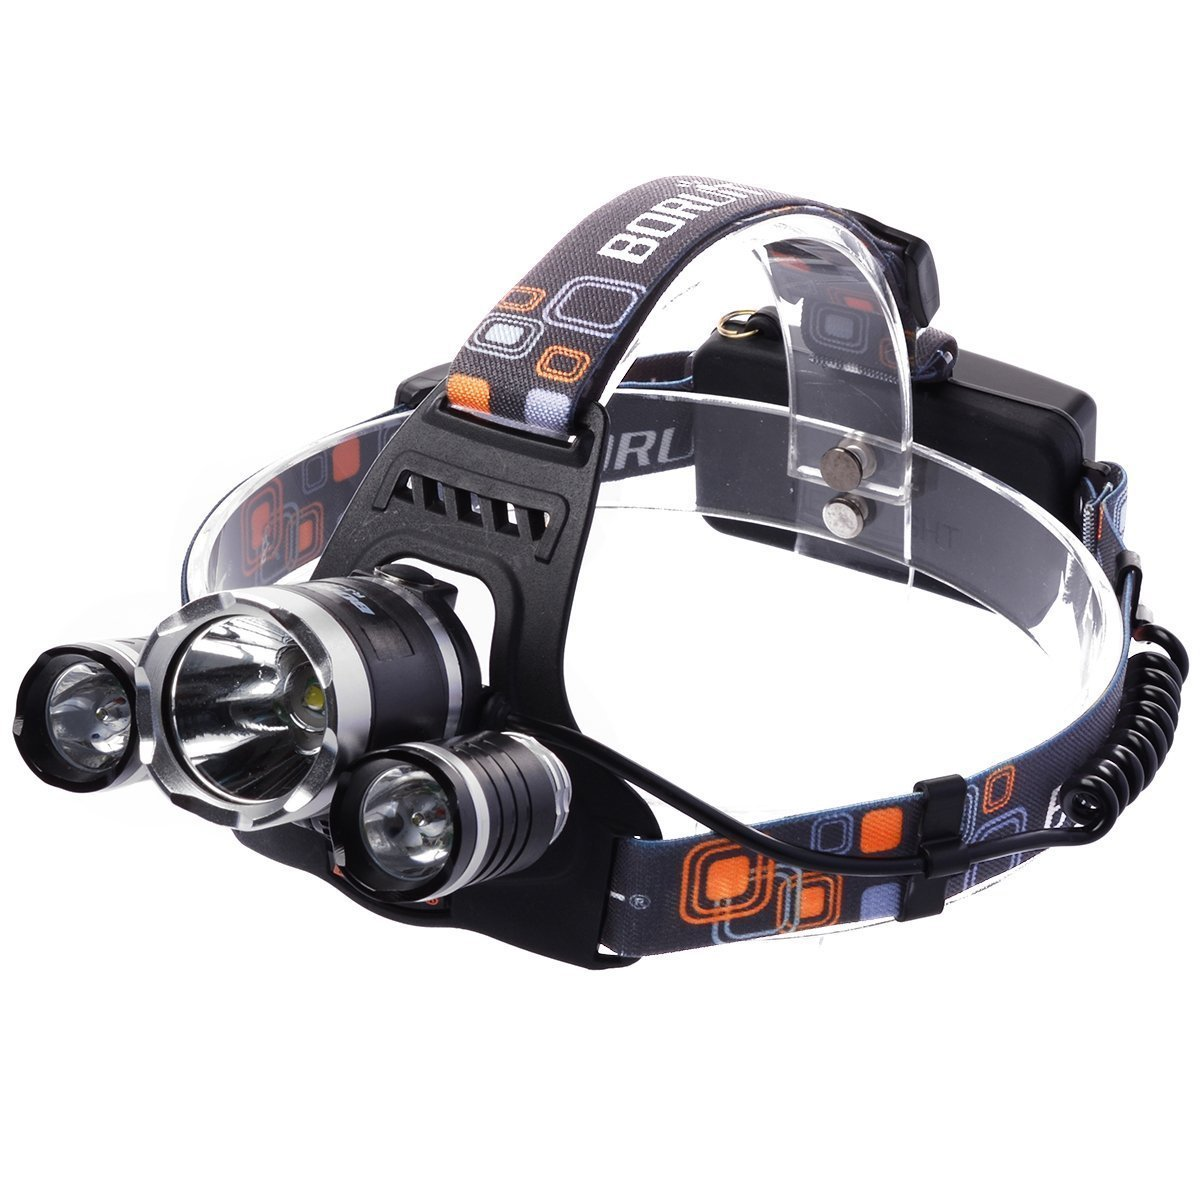 TaiChuDa 5000 Lumen LM LED Bicycle HeadLight HeadLamp 3 X CREE XM-L XML T6 Bike Light + USB Cable Battery Camping Fishing Hiking